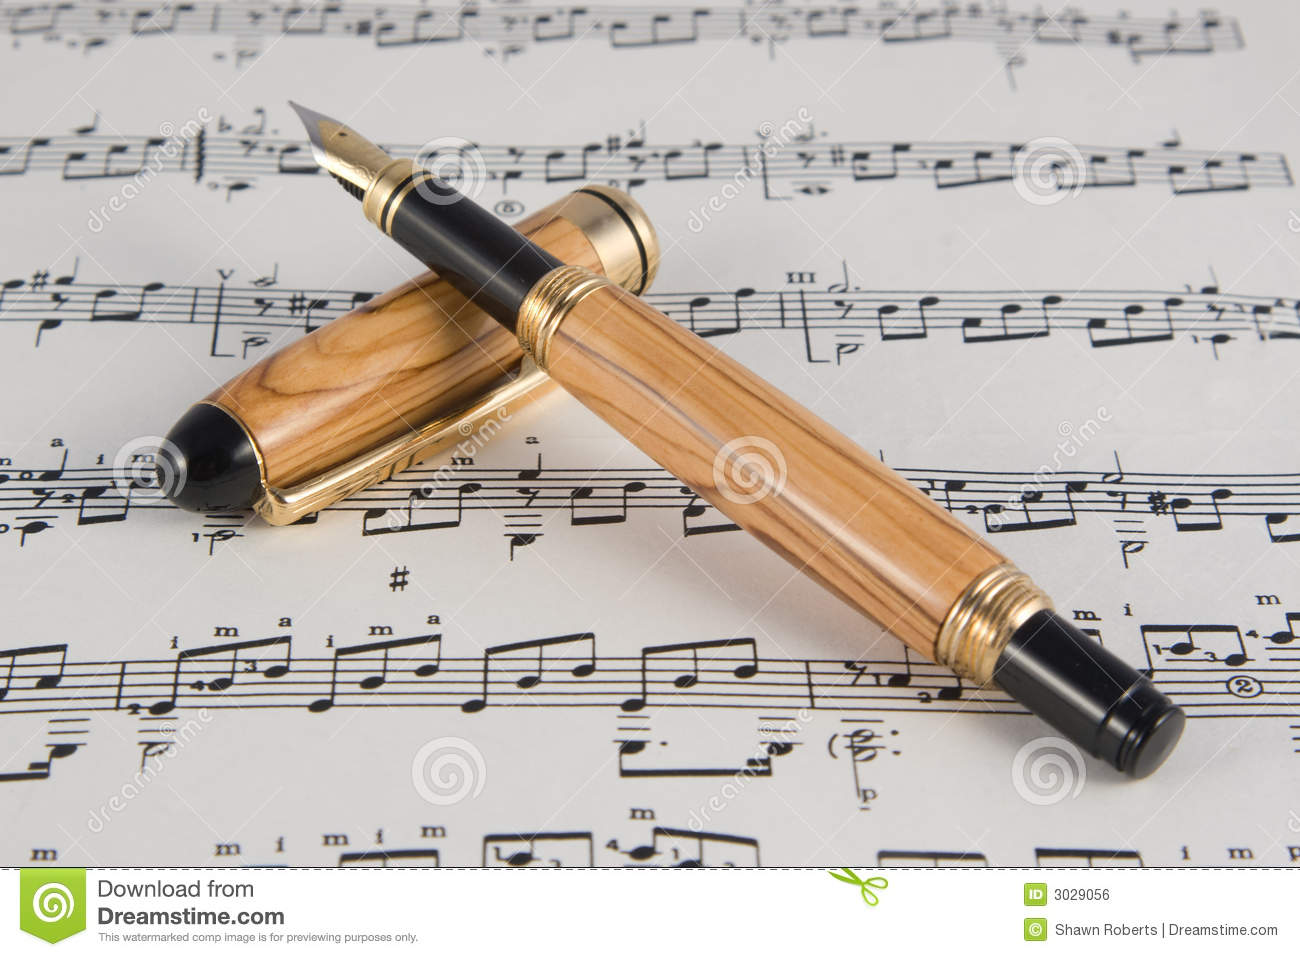 fine writing instruments Find fine writing instruments in us today on hotfrog us looking for fine writing instruments services or writing services in us find over 88 fine writing.